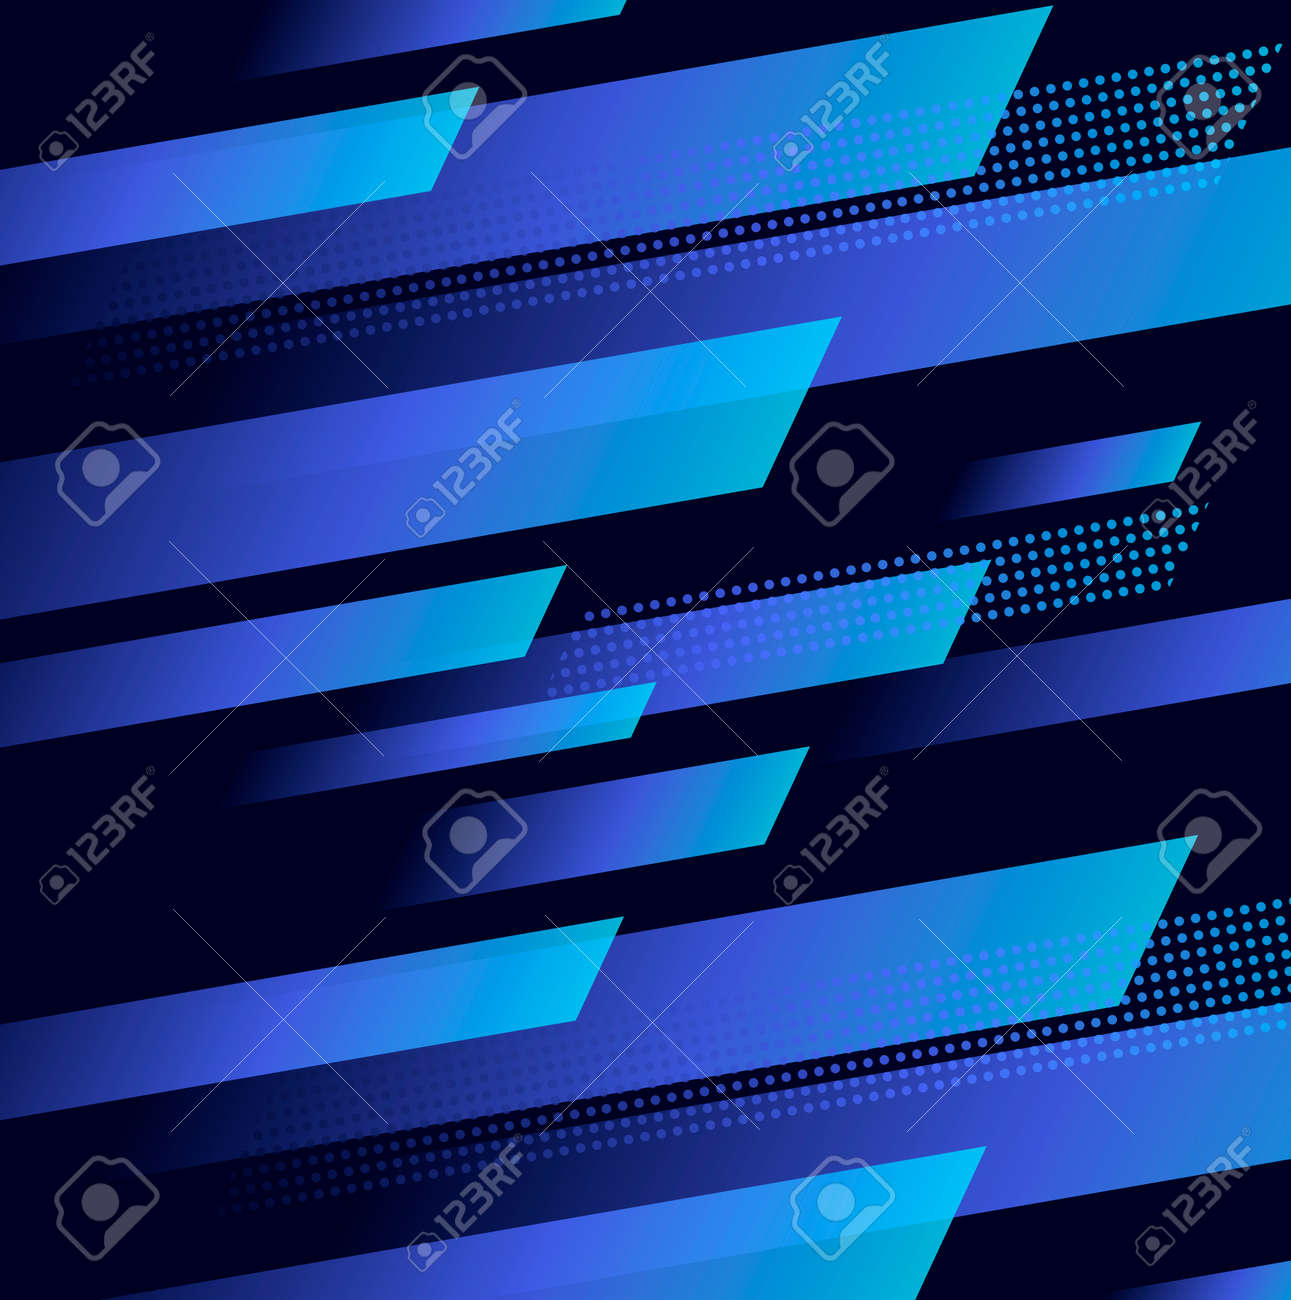 Abstract background with dynamic blue geometric shapes in motion forming graphic texture - 172500989